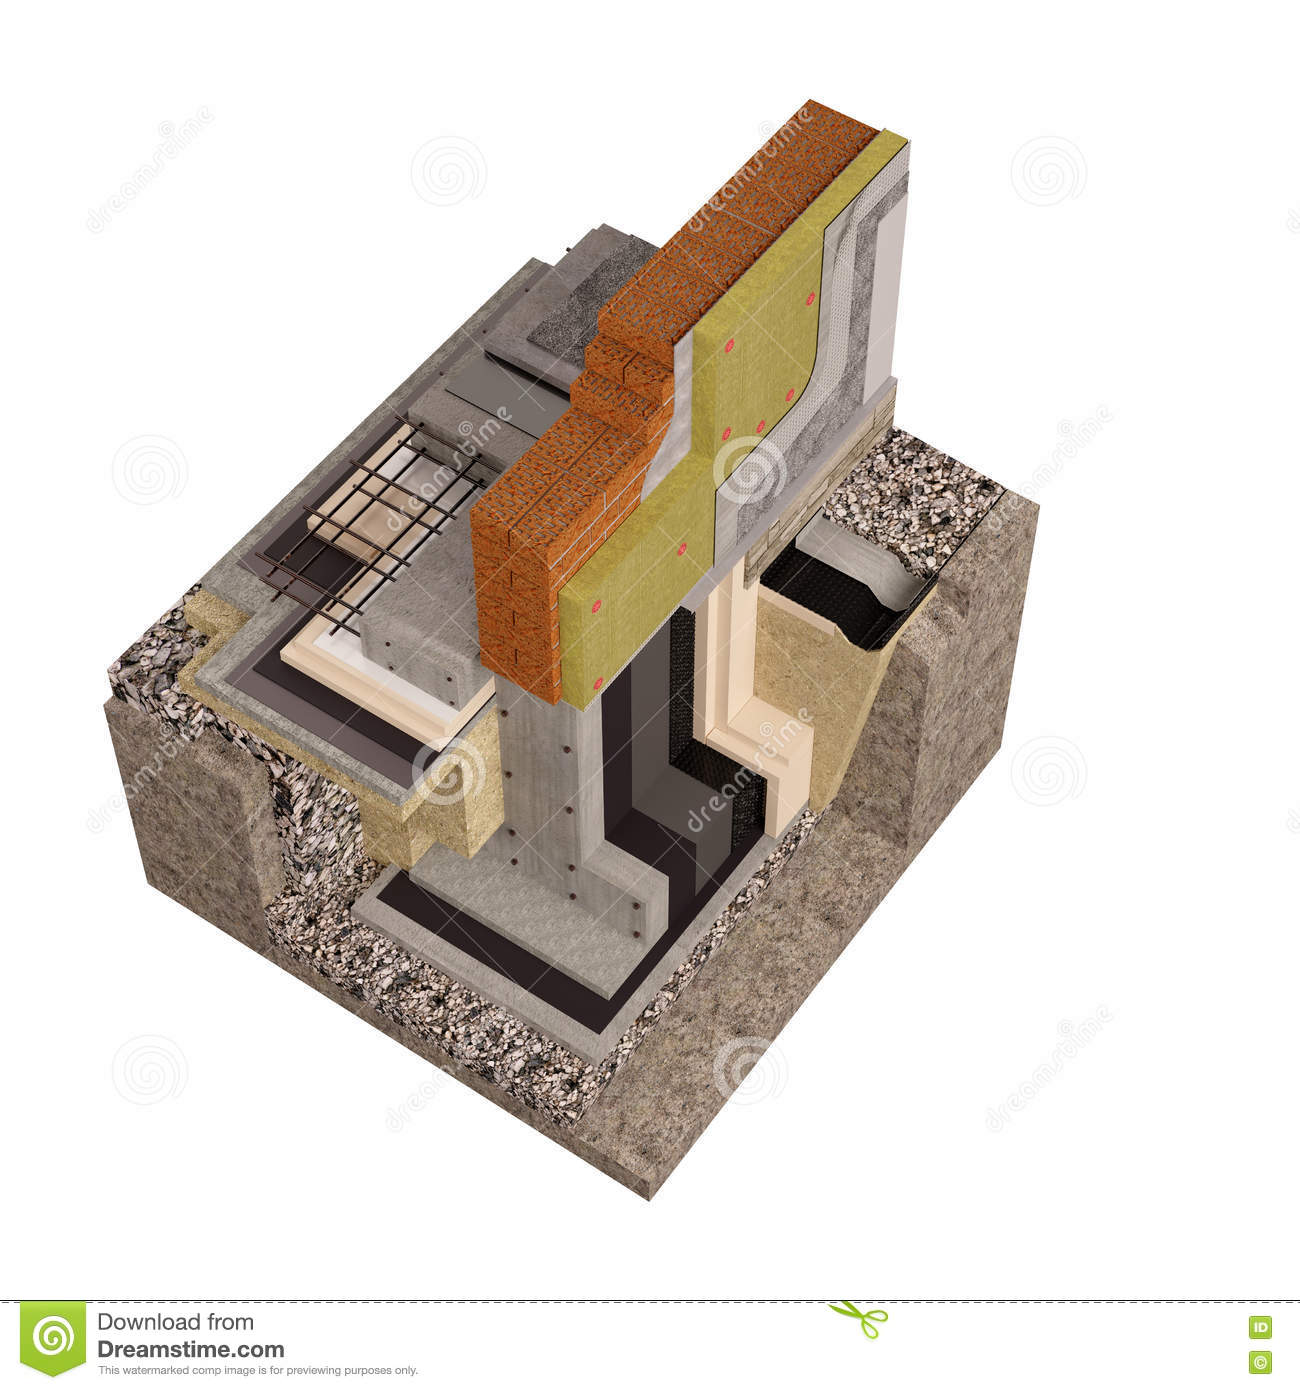 High Quality 3d Render Computer Image Of Foundations And